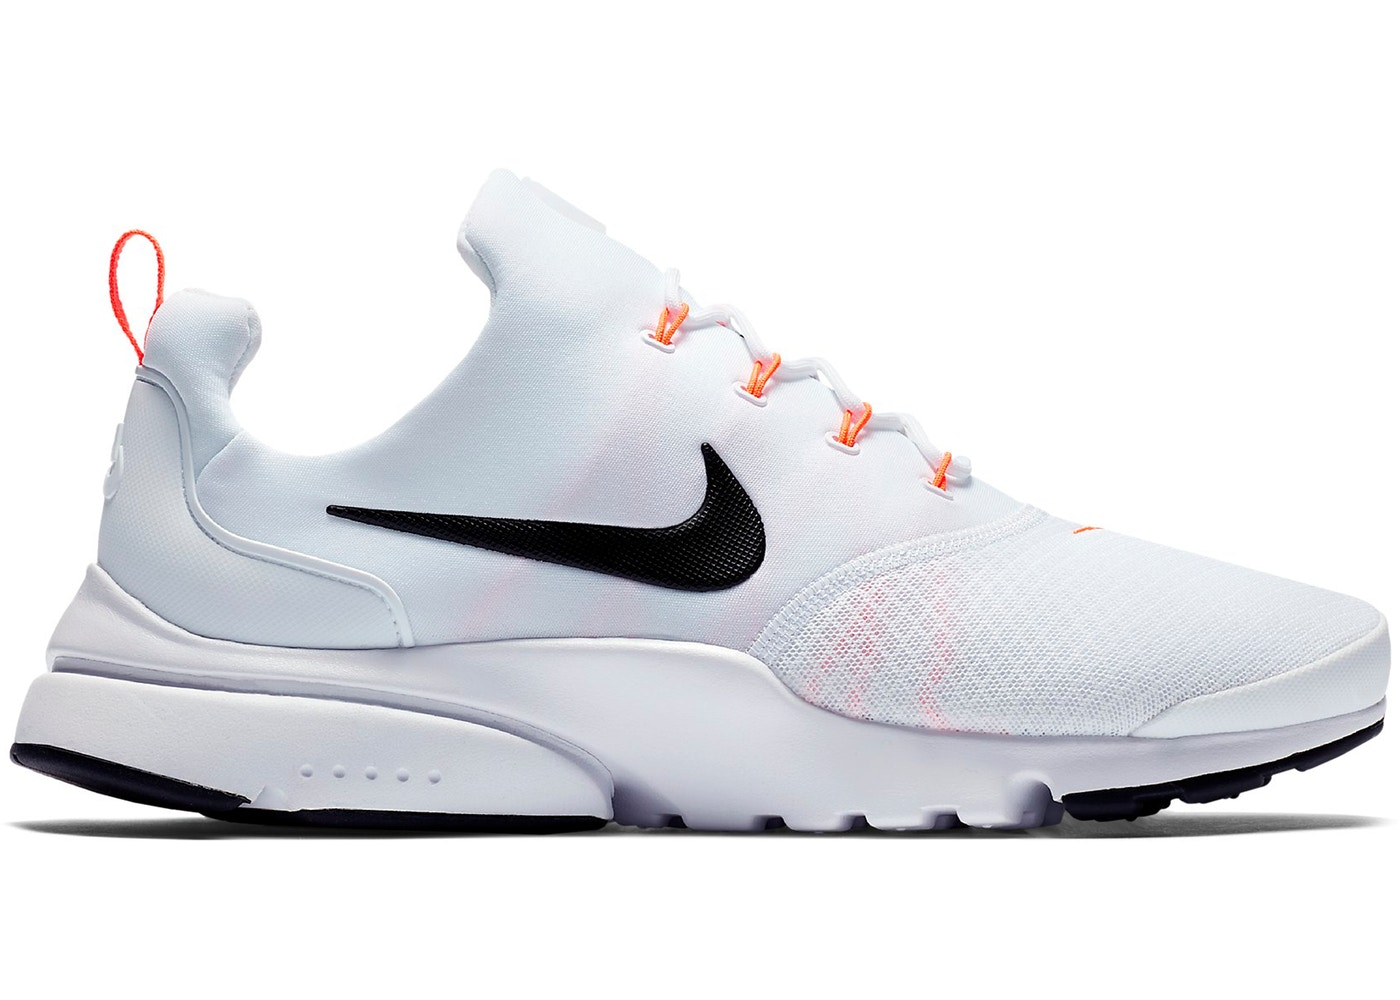 1926b51acc6 Nike Presto Fly Just Do It Pack White - AQ9688-100